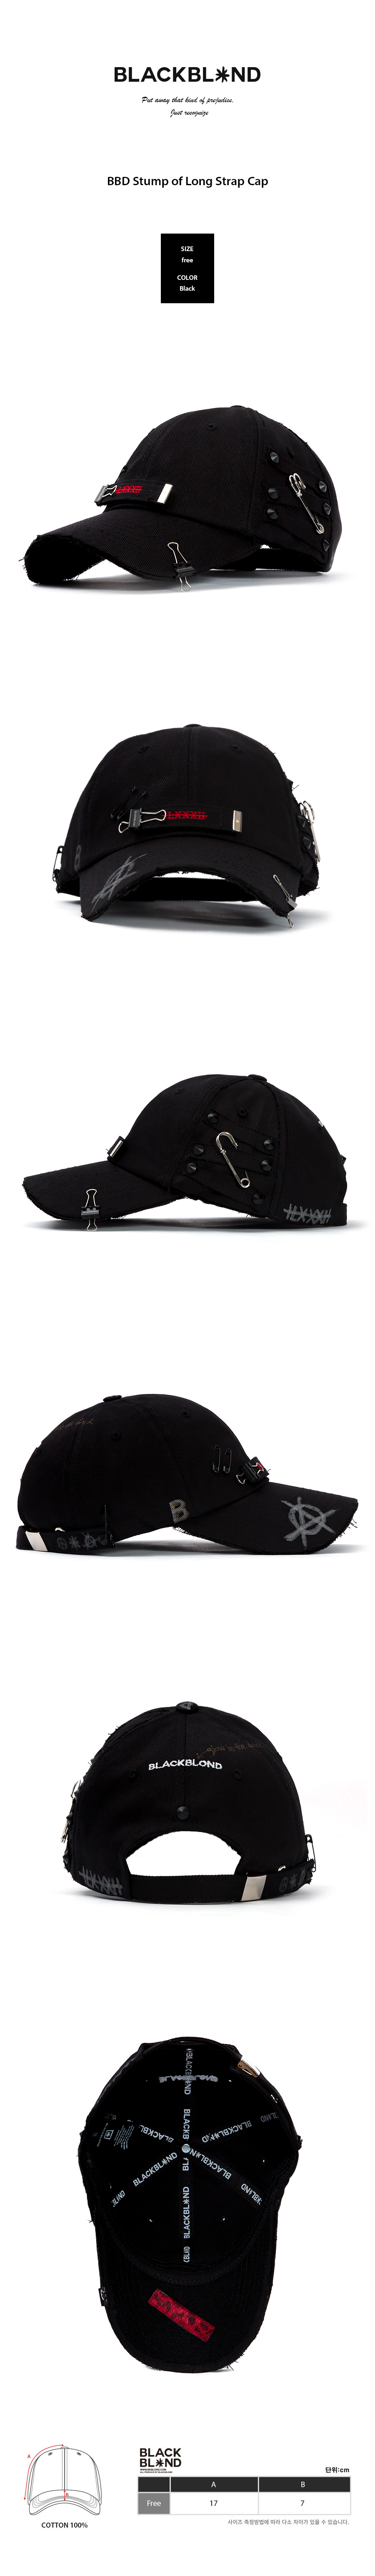 BBD-Stump-of-Long-Strap-Cap-%28Black%29.jpg